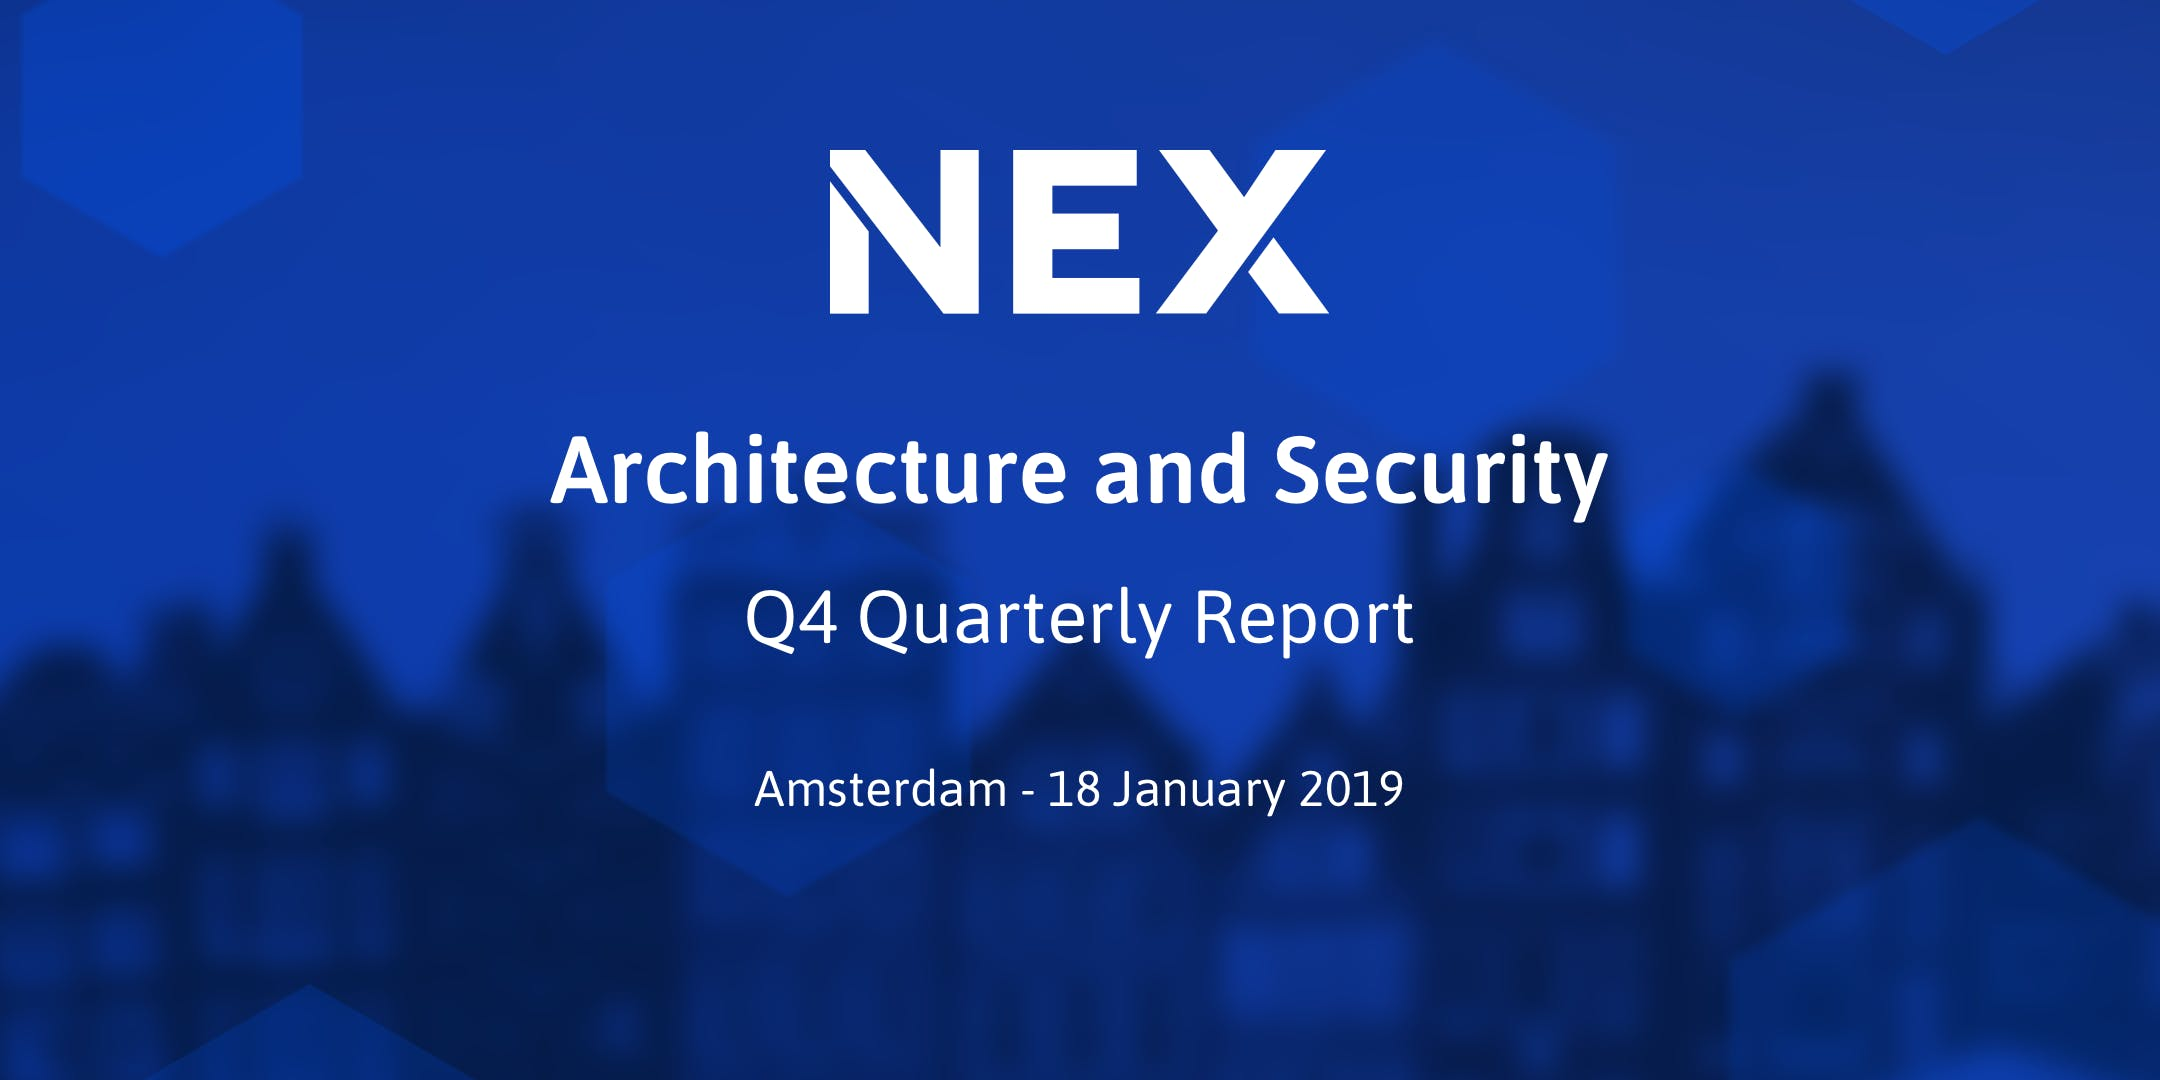 NEX Quarterly Report: Architecture and Securi